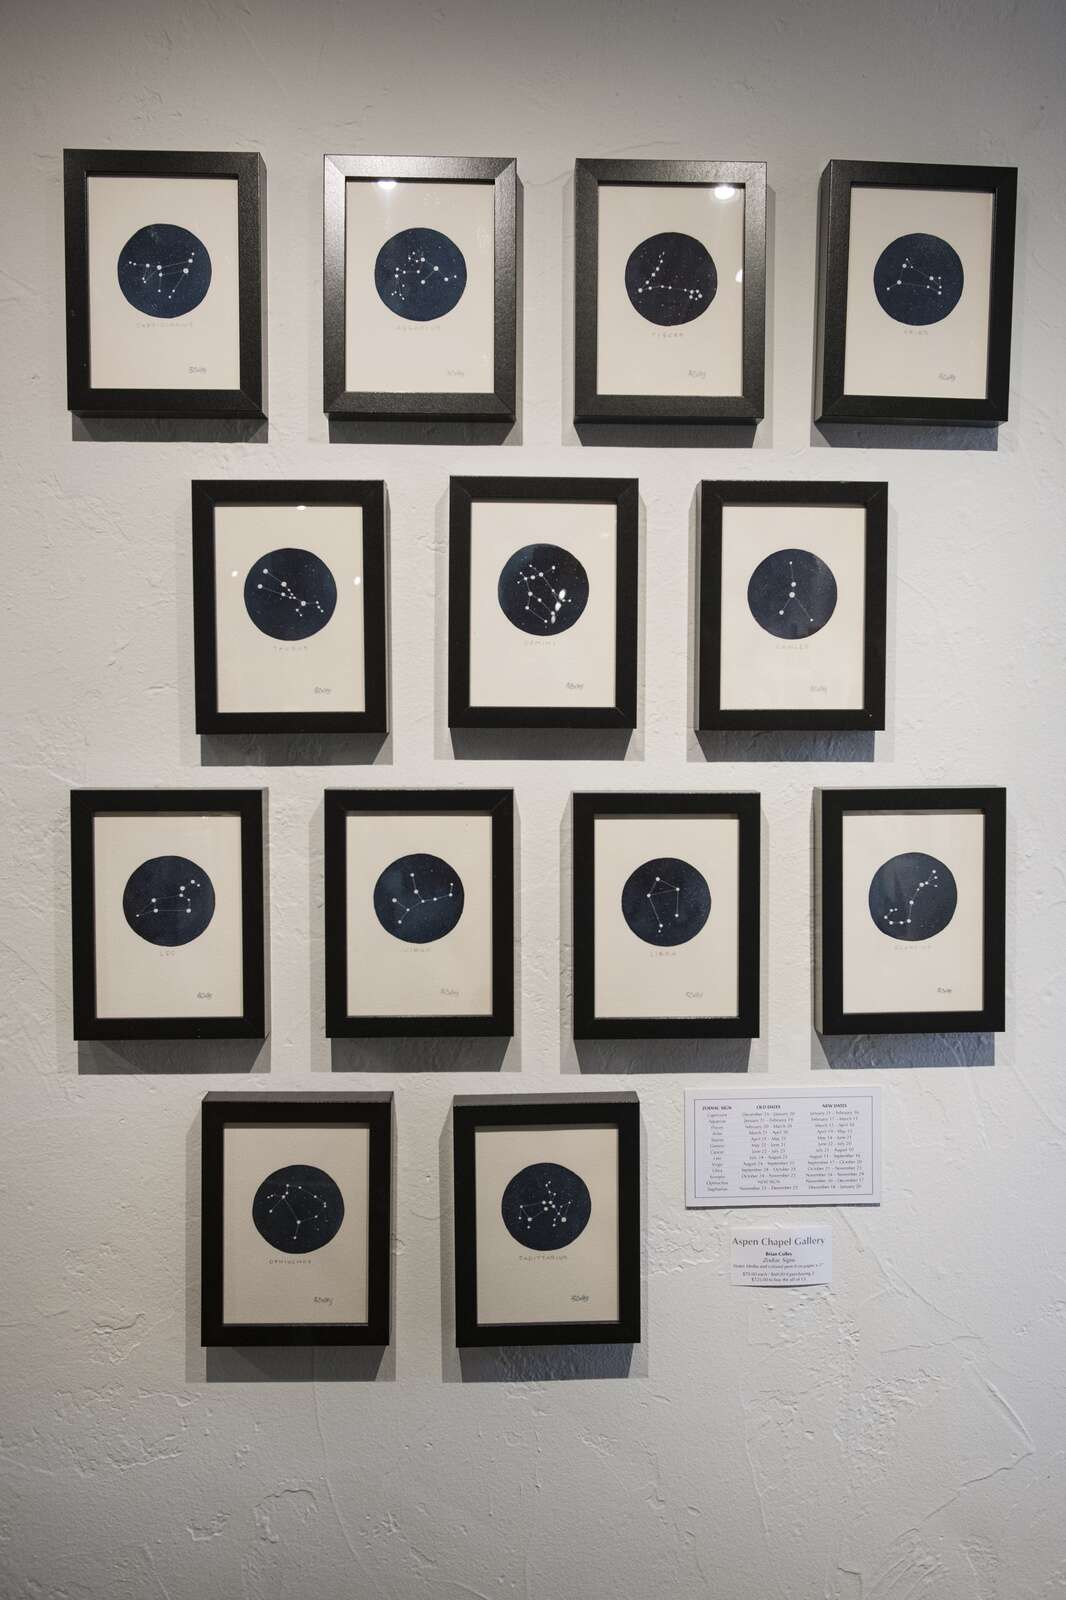 Zodiac Signs by Brian Colley are displayed in the Aspen Chapel Gallery for the Small Wonders holiday show and sale on Tuesday, Nov. 17, 2020. (Kelsey Brunner/The Aspen Times)